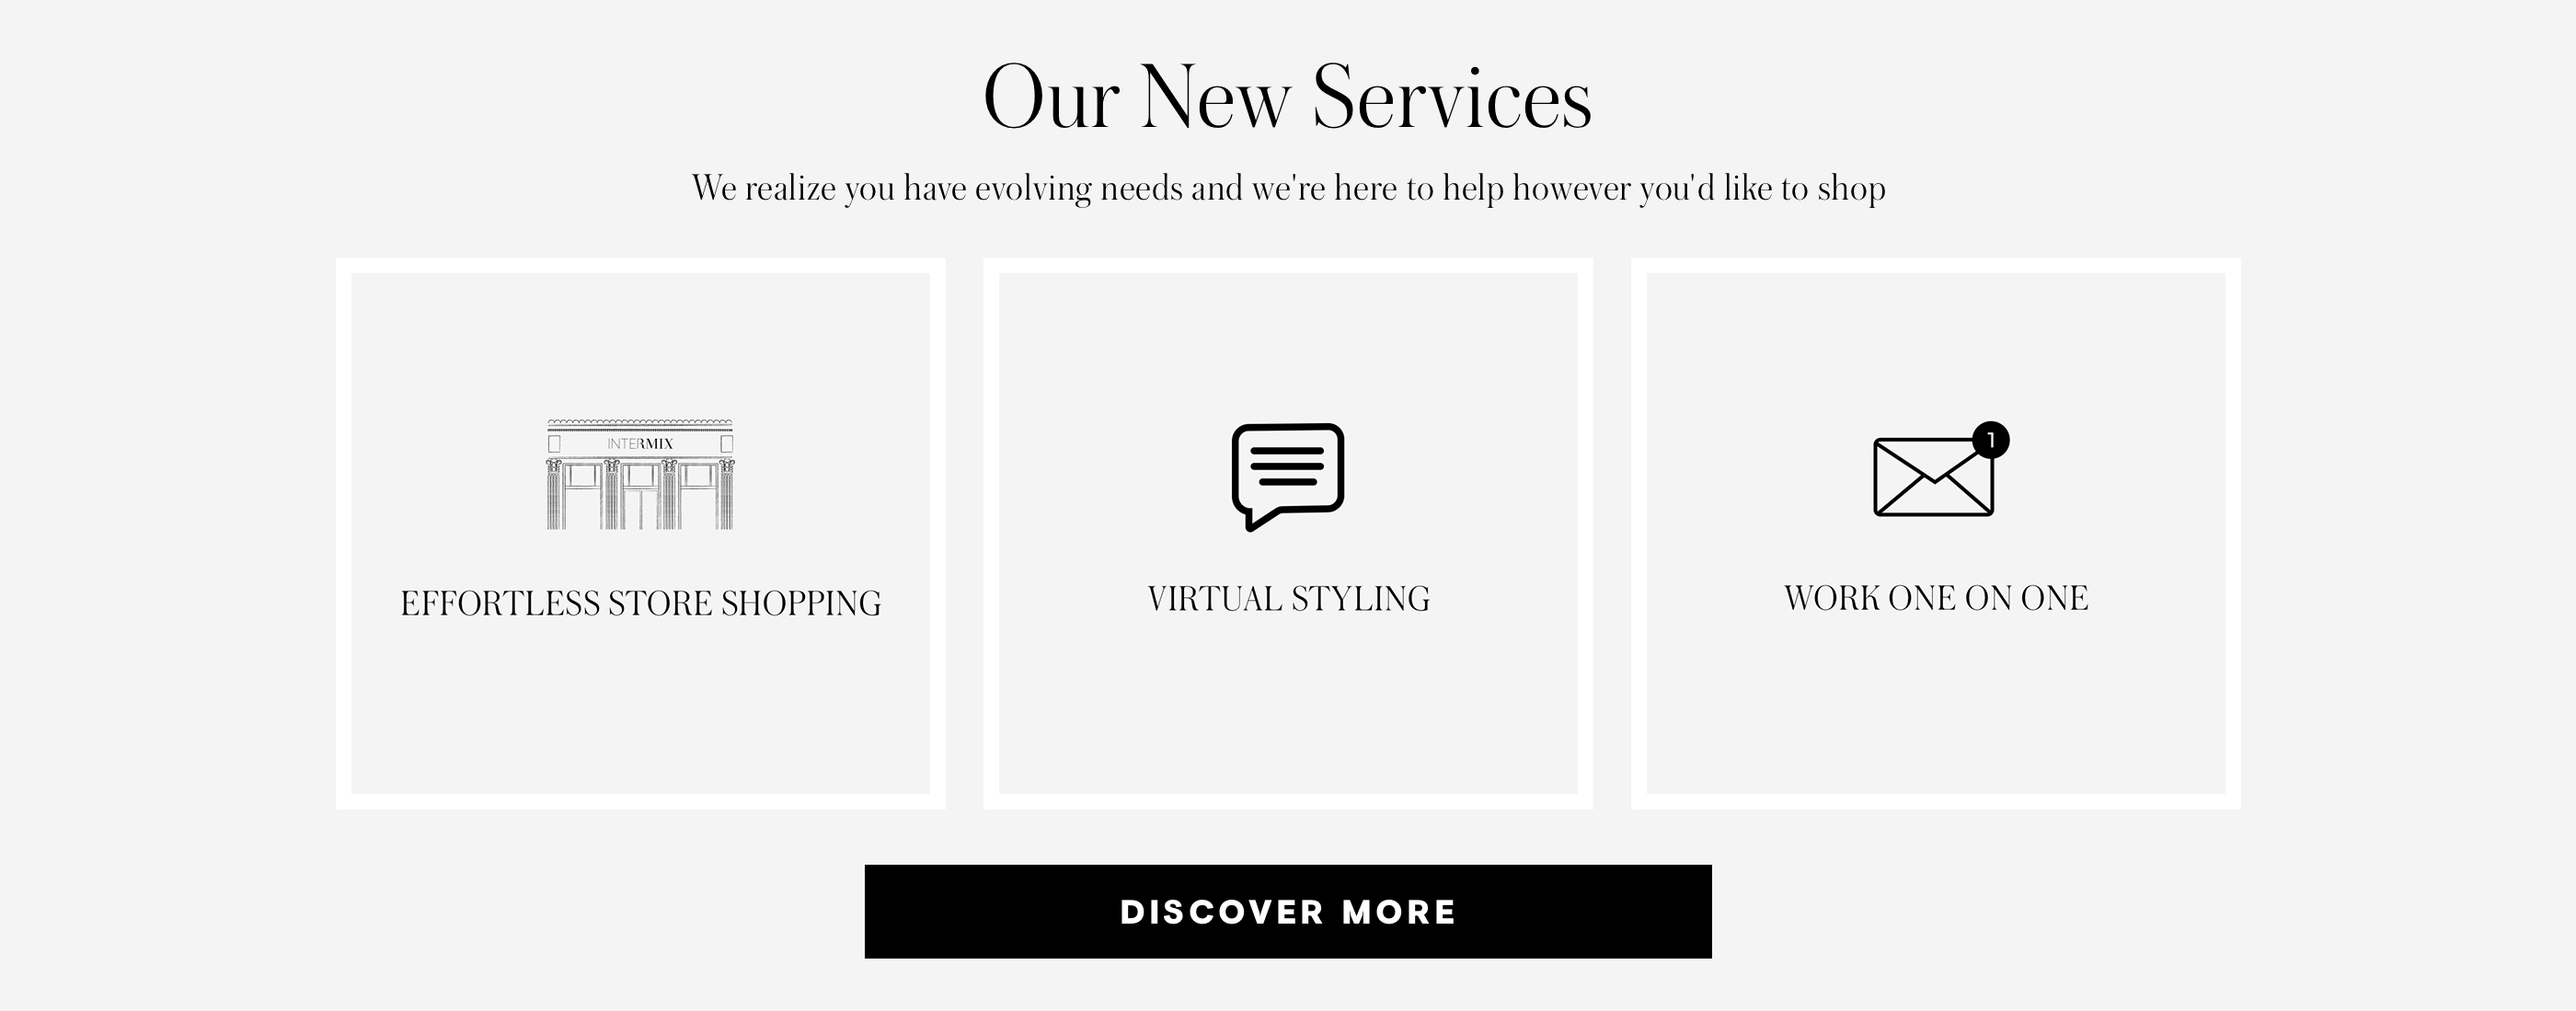 Our New Services We realize you have evolving needs and we're here to help however you'd like to shop.